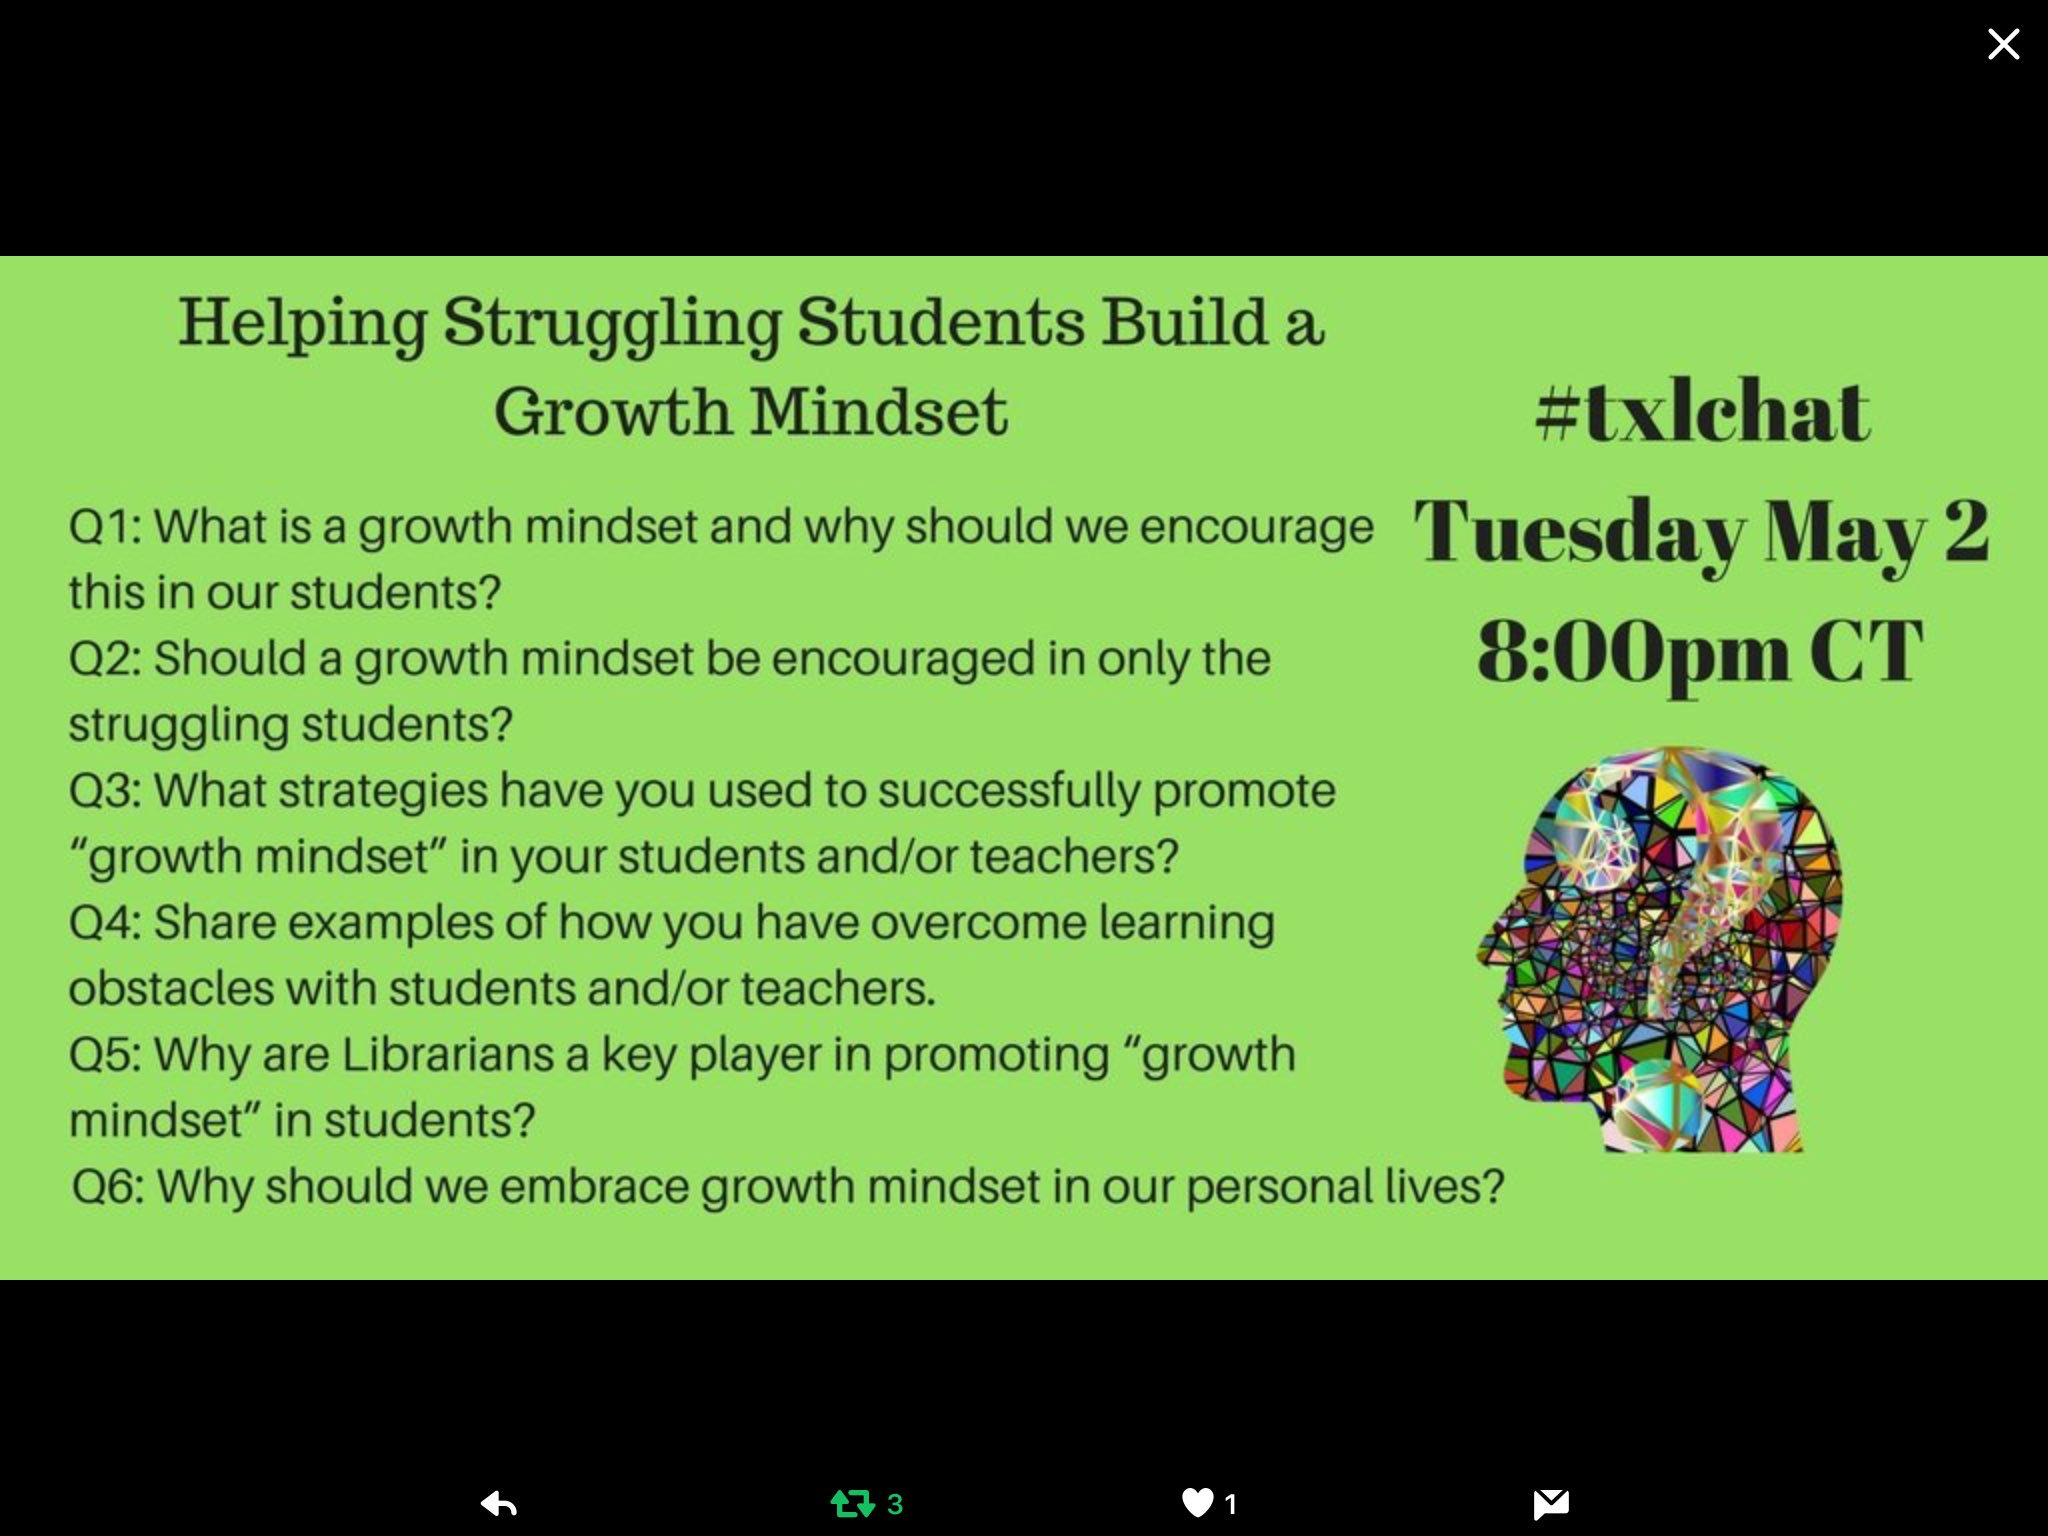 For moderators @janhodgelibrary @EdneyLib our last hosted #txlchat for the 16-17 year! Join us tonight 8PM CST to discuss Growth Mindset https://t.co/J4eqtk1H3V